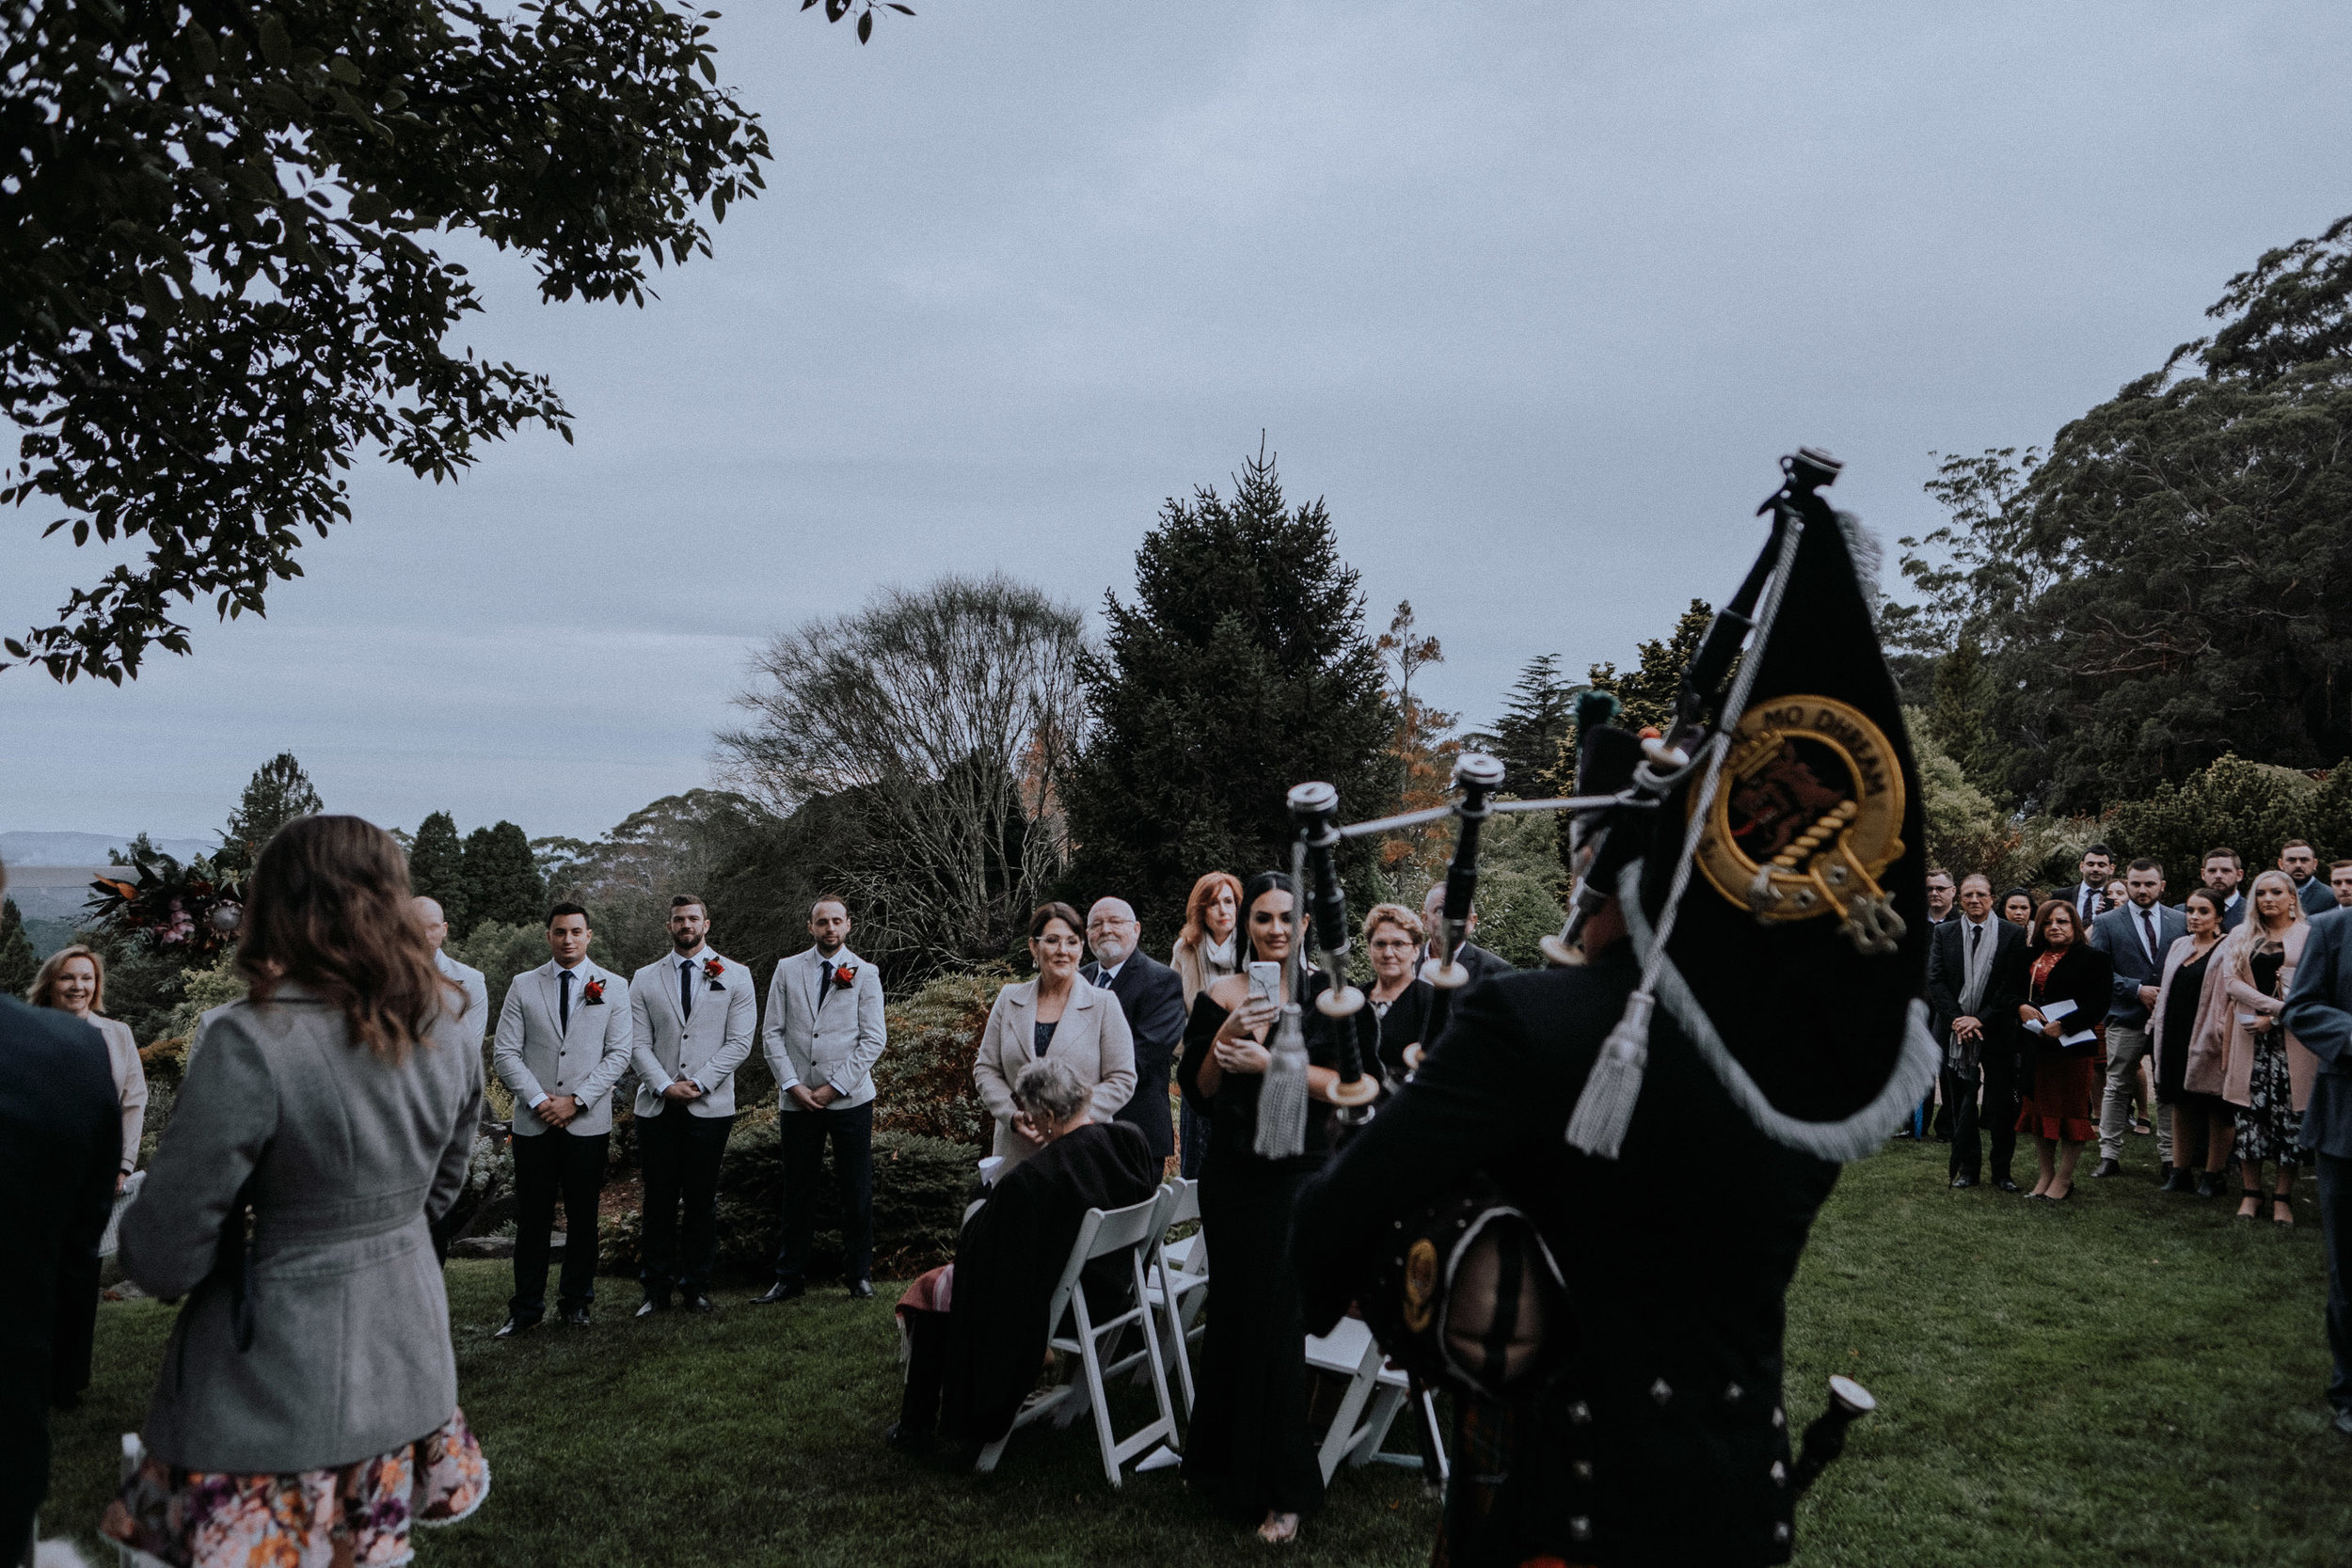 A bagpiper surprises guests at a winter wedding at Mt Tomah Botanic Gardens